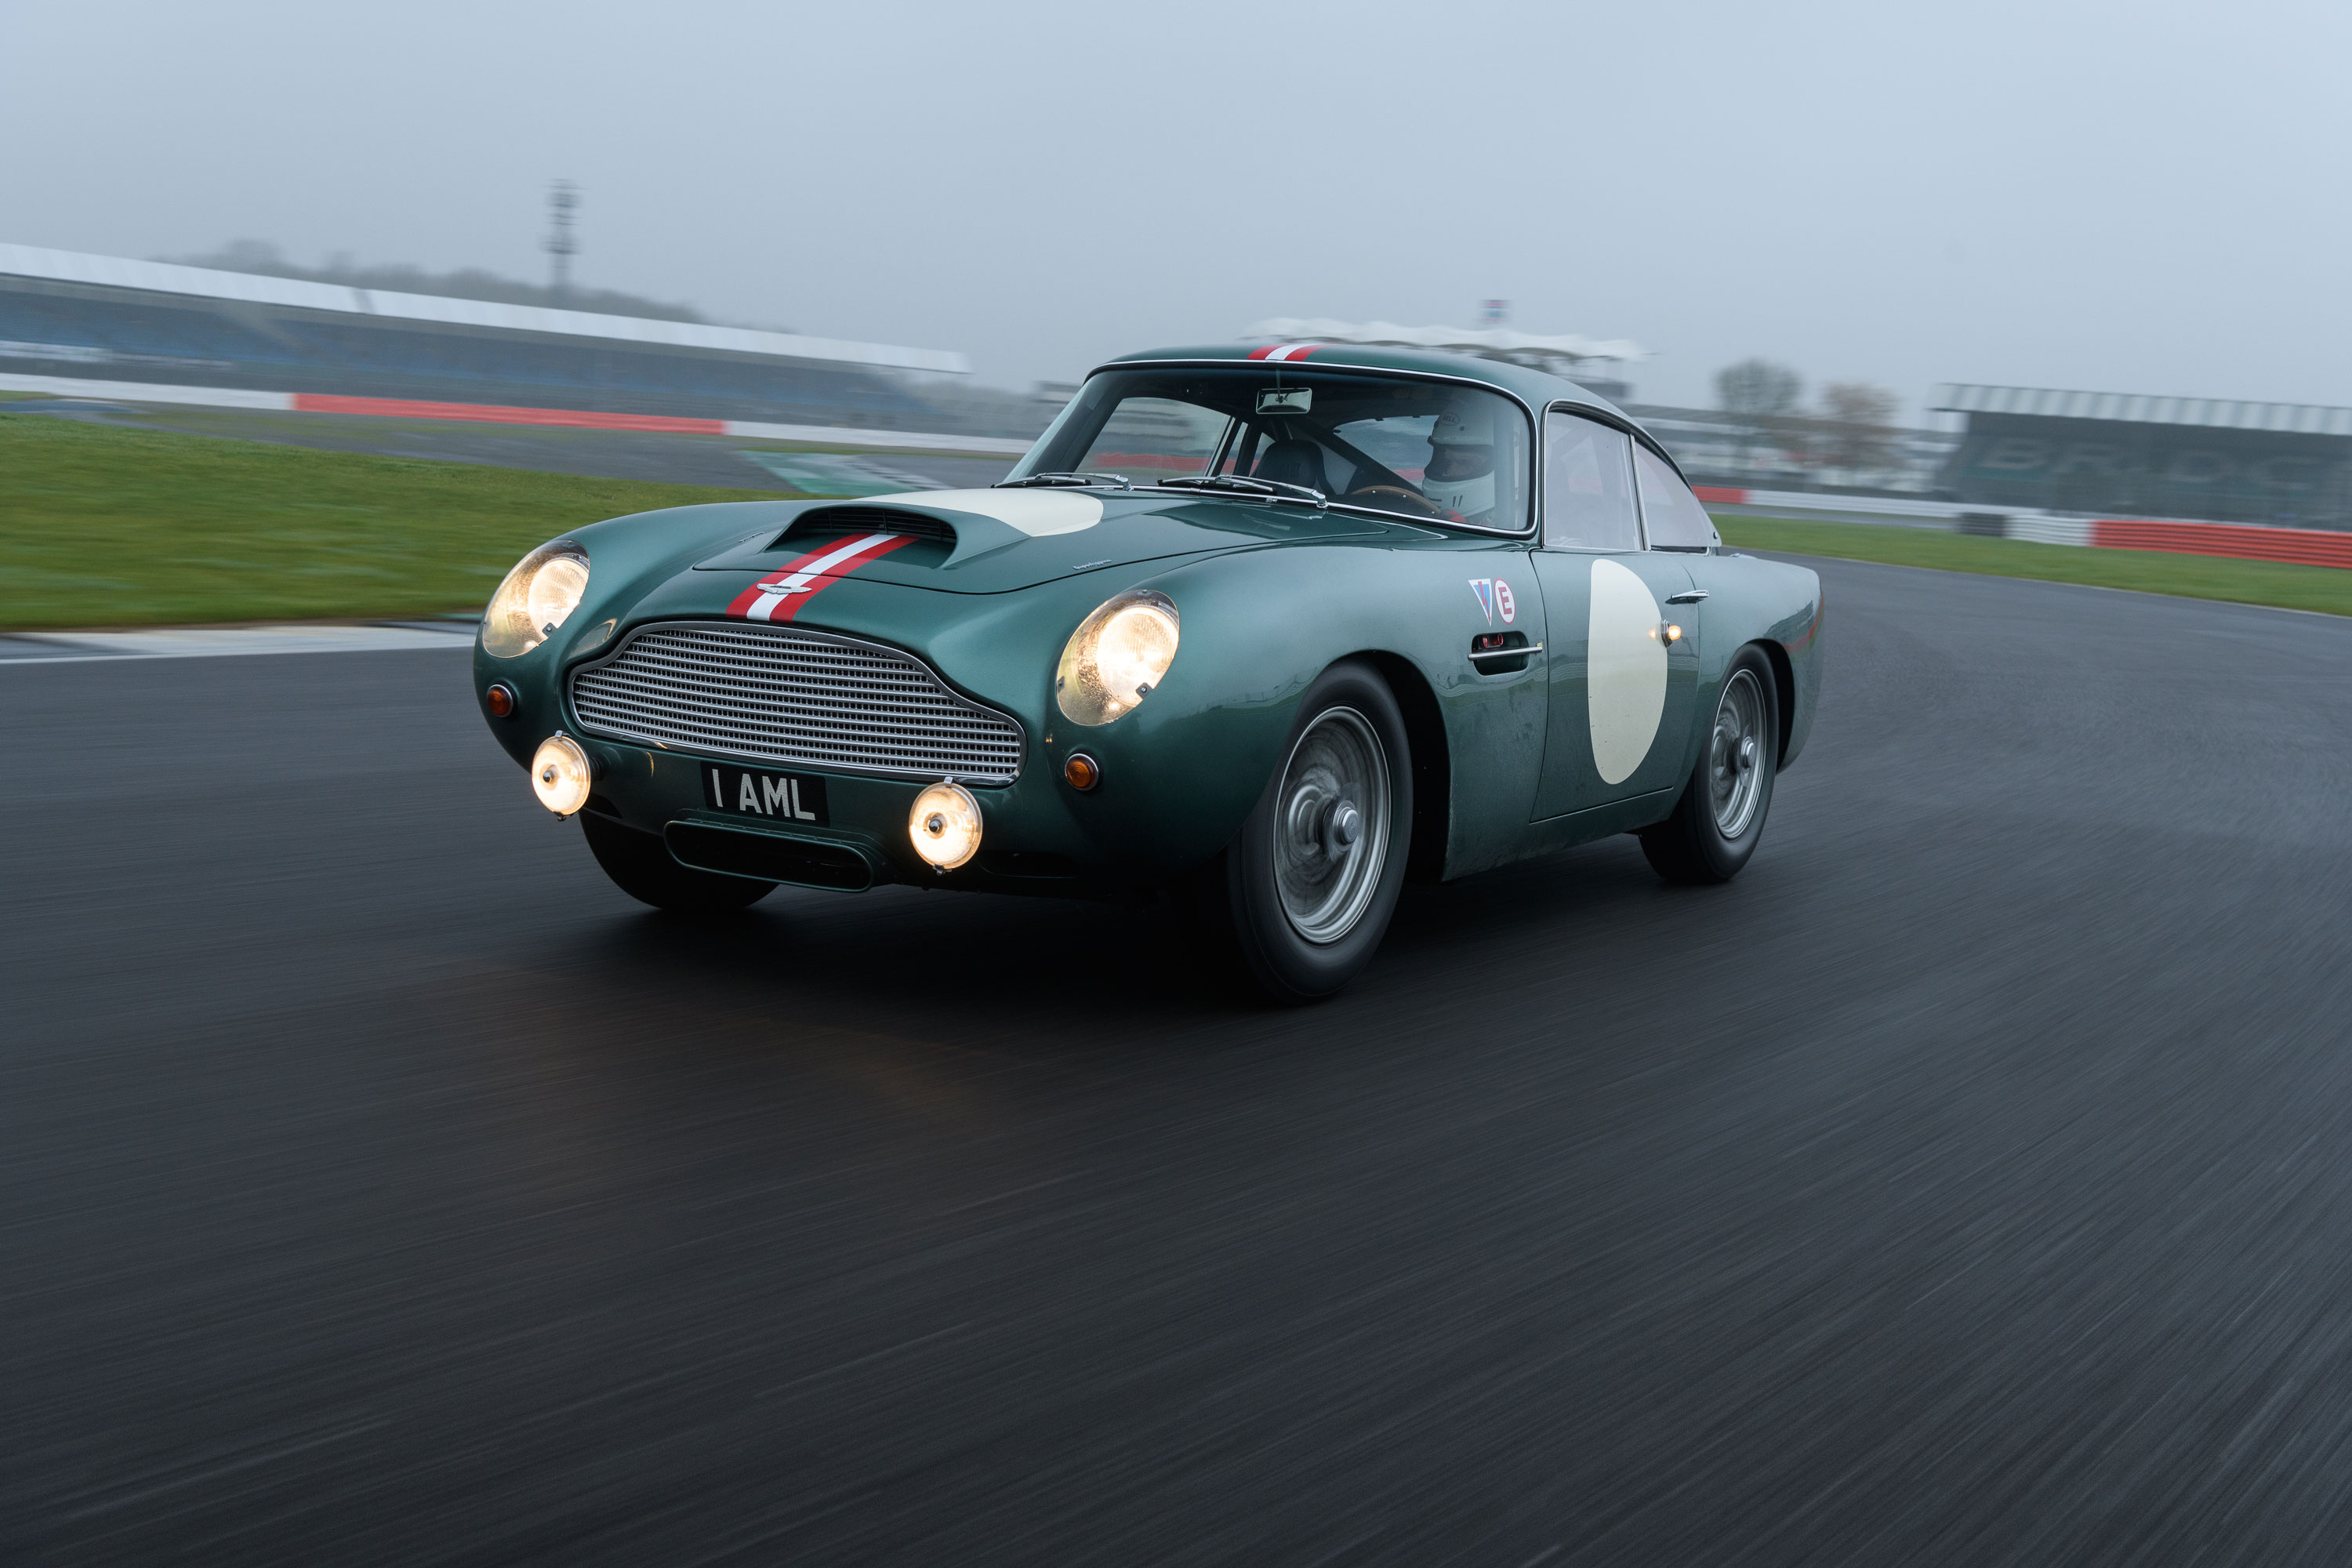 1959 Aston Martin DB4 GT low front 3/4 on the track